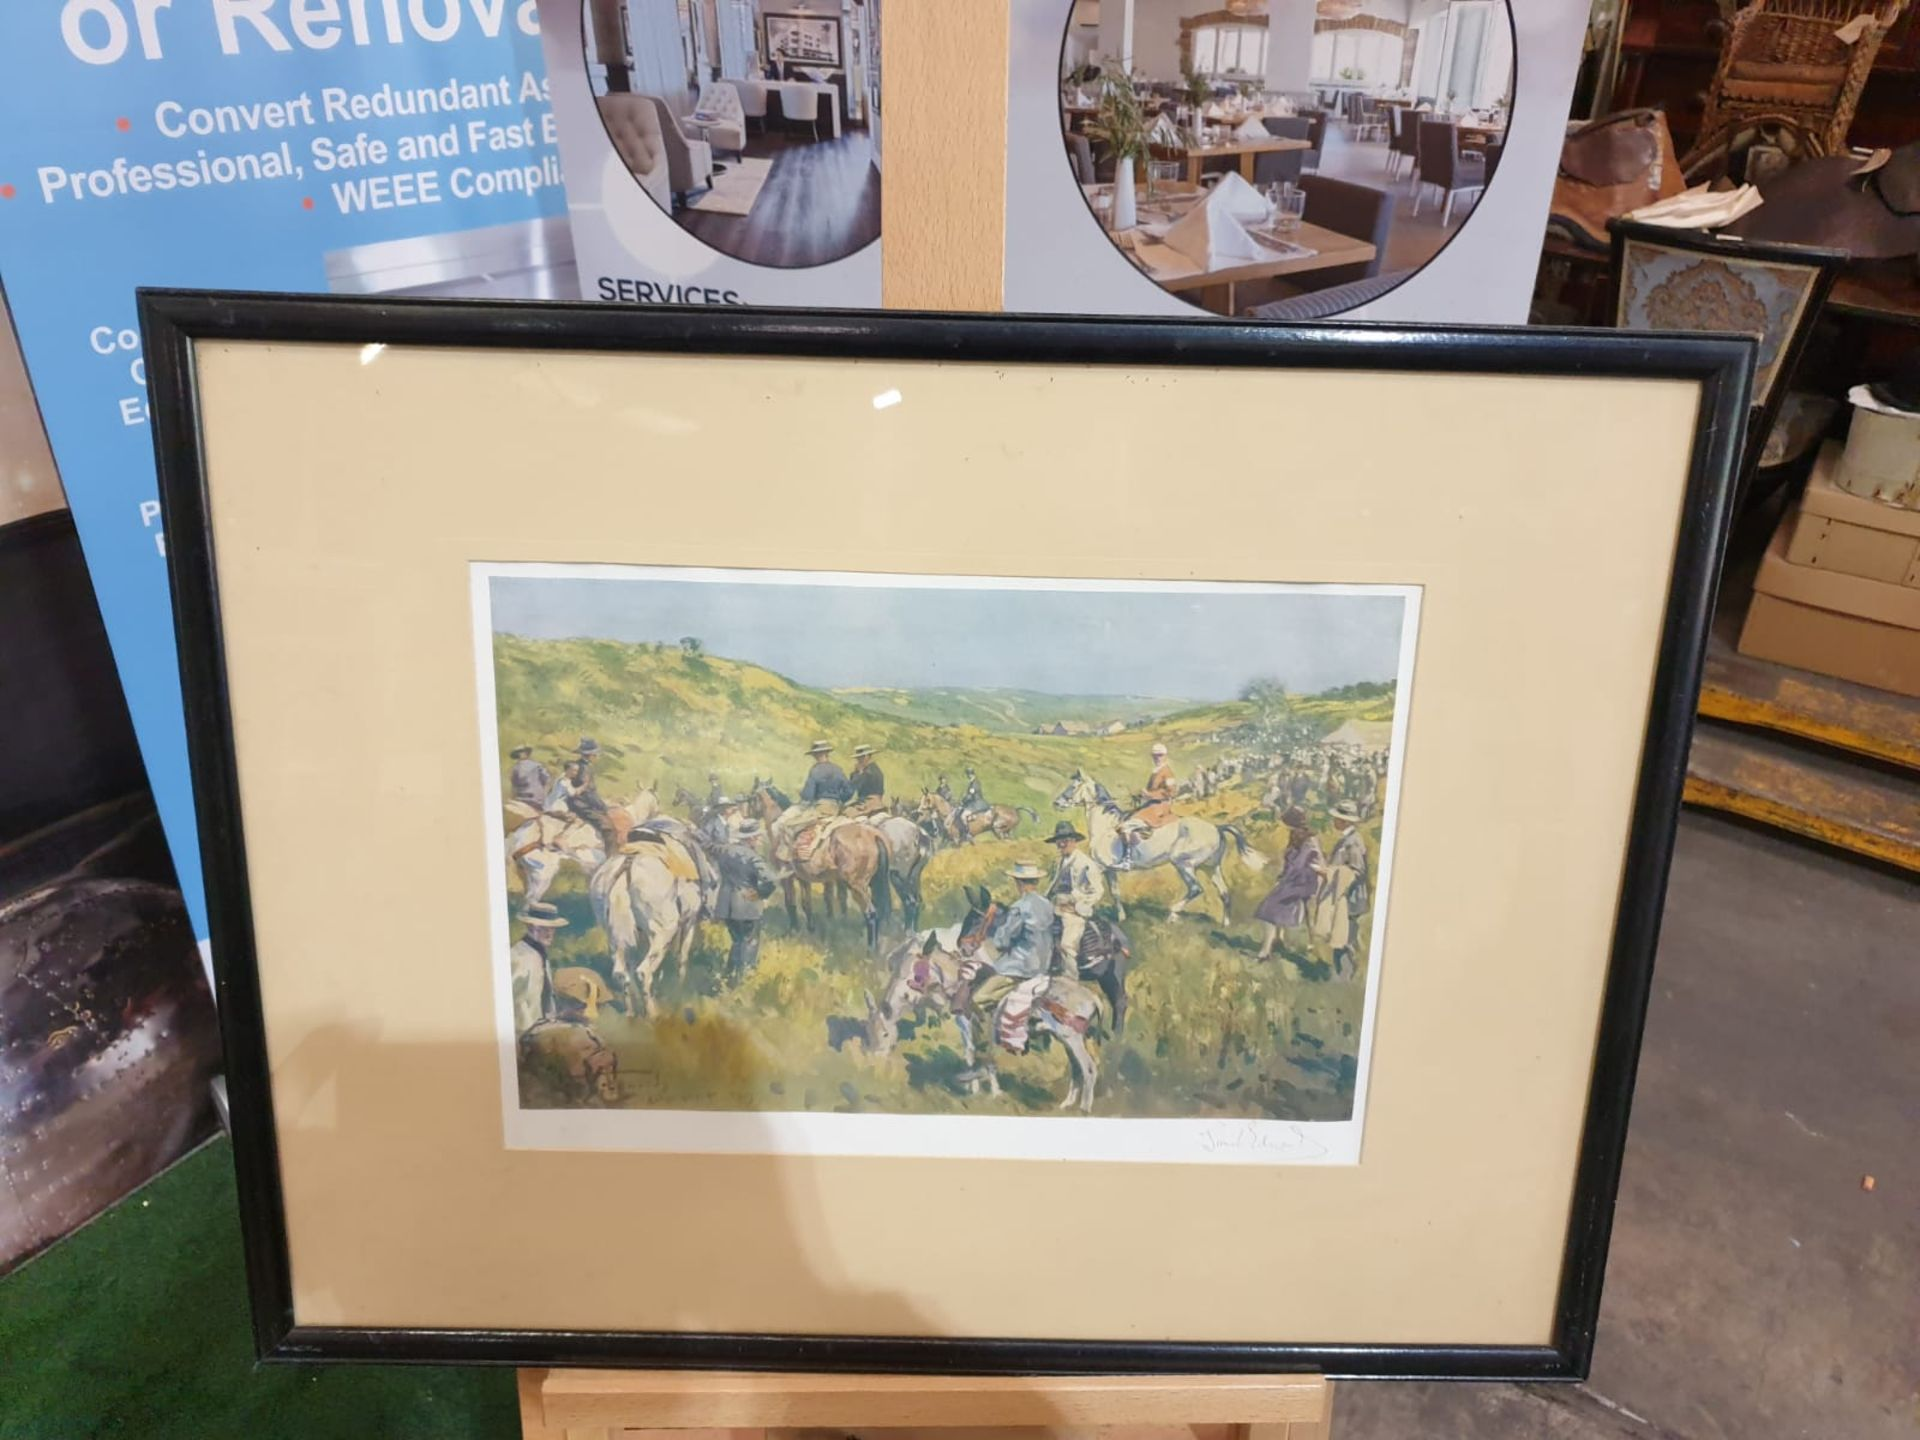 Framed signed print The Royal Calpe Hunt Point-to-Point Meeting - On the right Col. Price-Davis